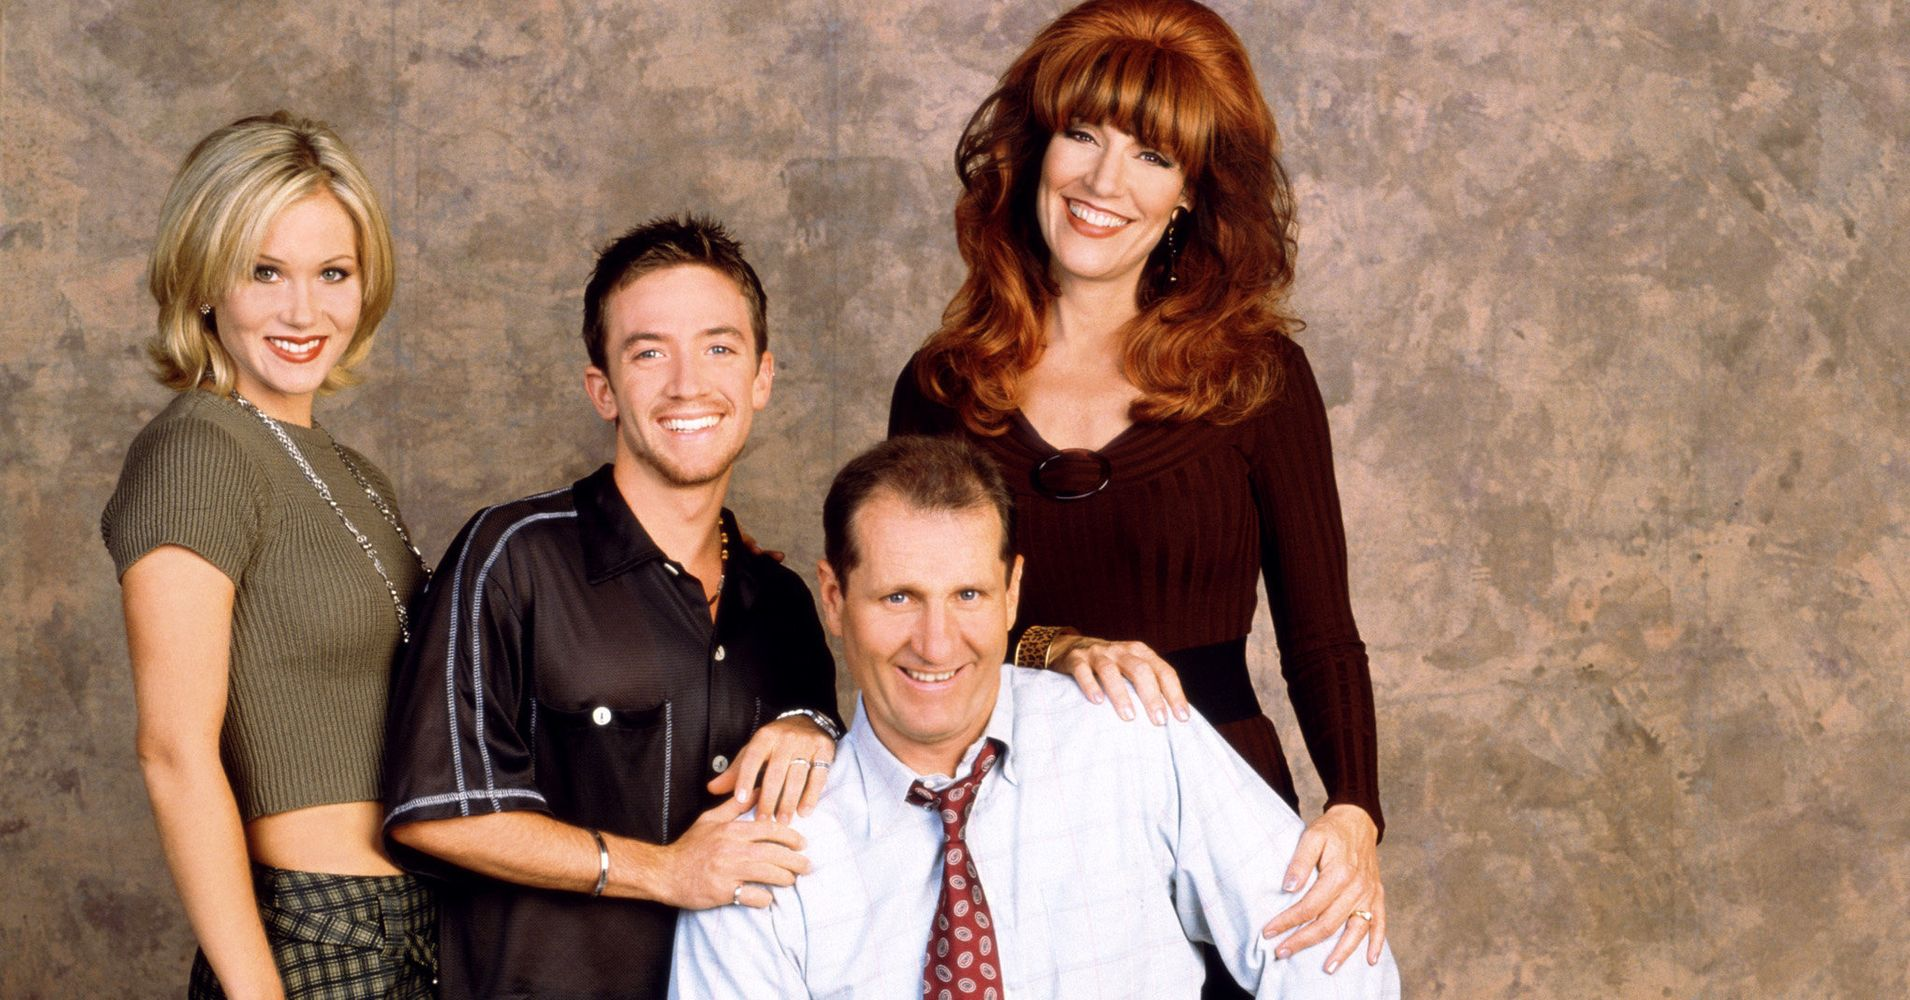 Married With Children Reunion Is So Close to Happening